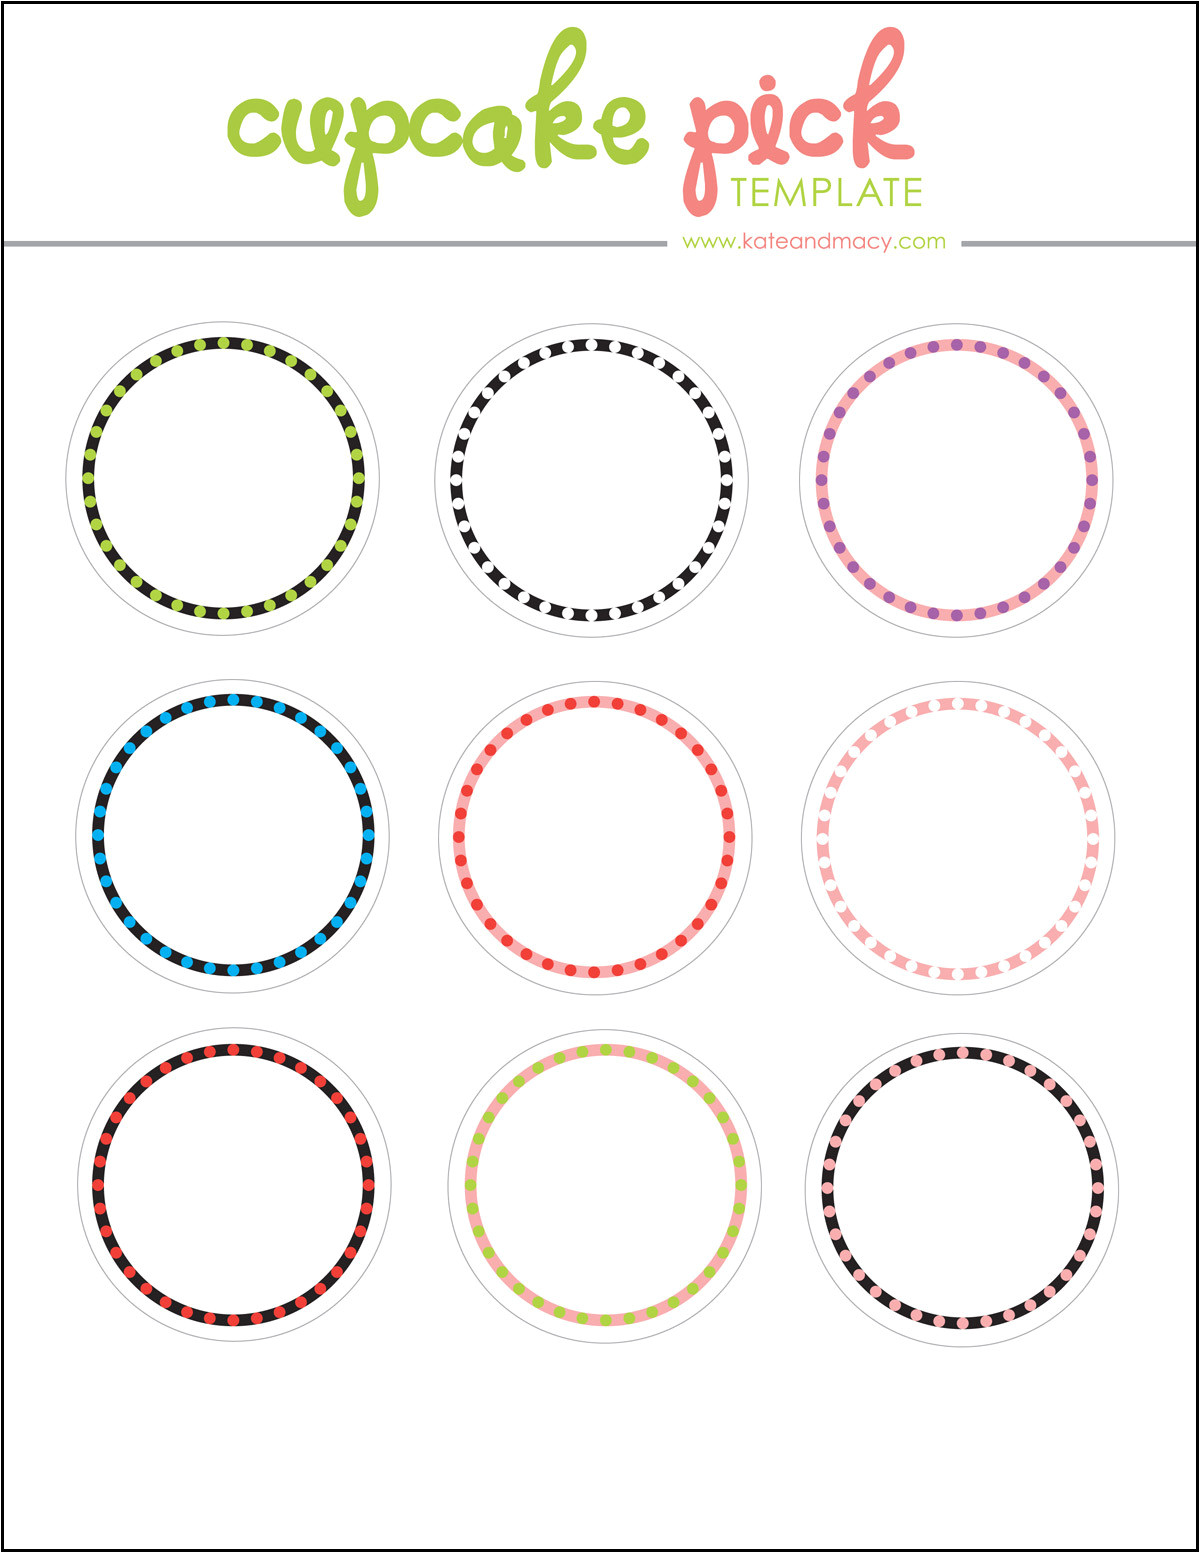 Cupcake Picks Template Kate Macy Free Digital Cupcake Pick topper Template